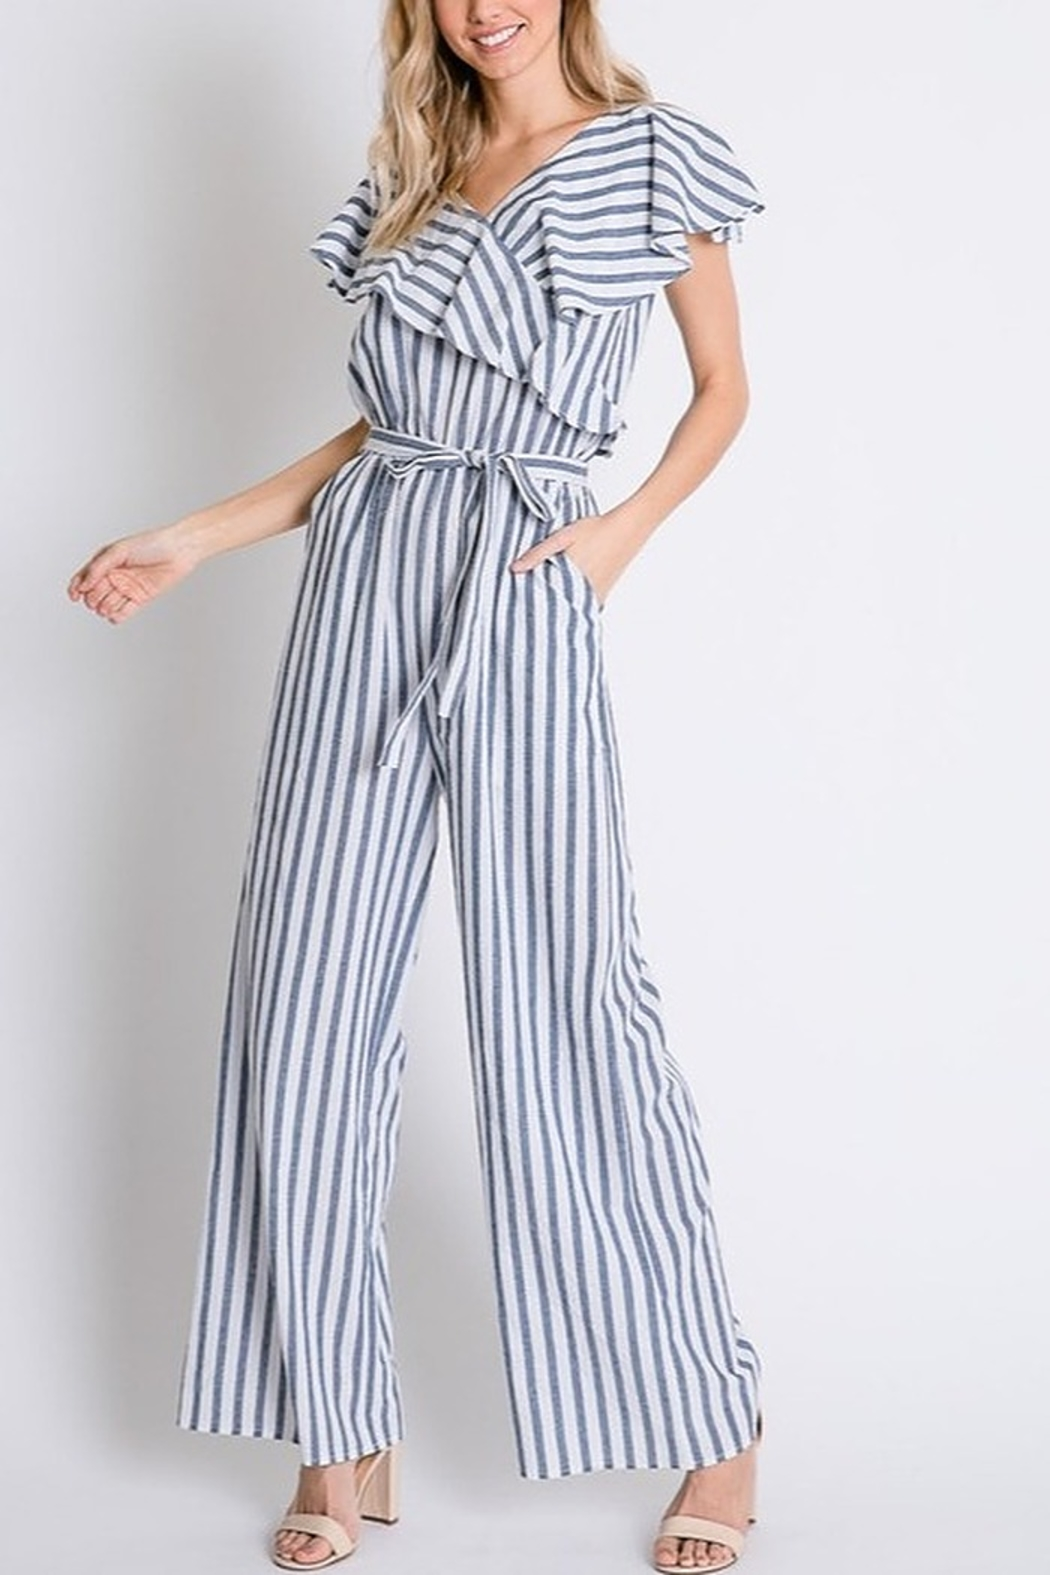 Lyn-Maree's  Perfect Stripe Jumpsuit - Main Image